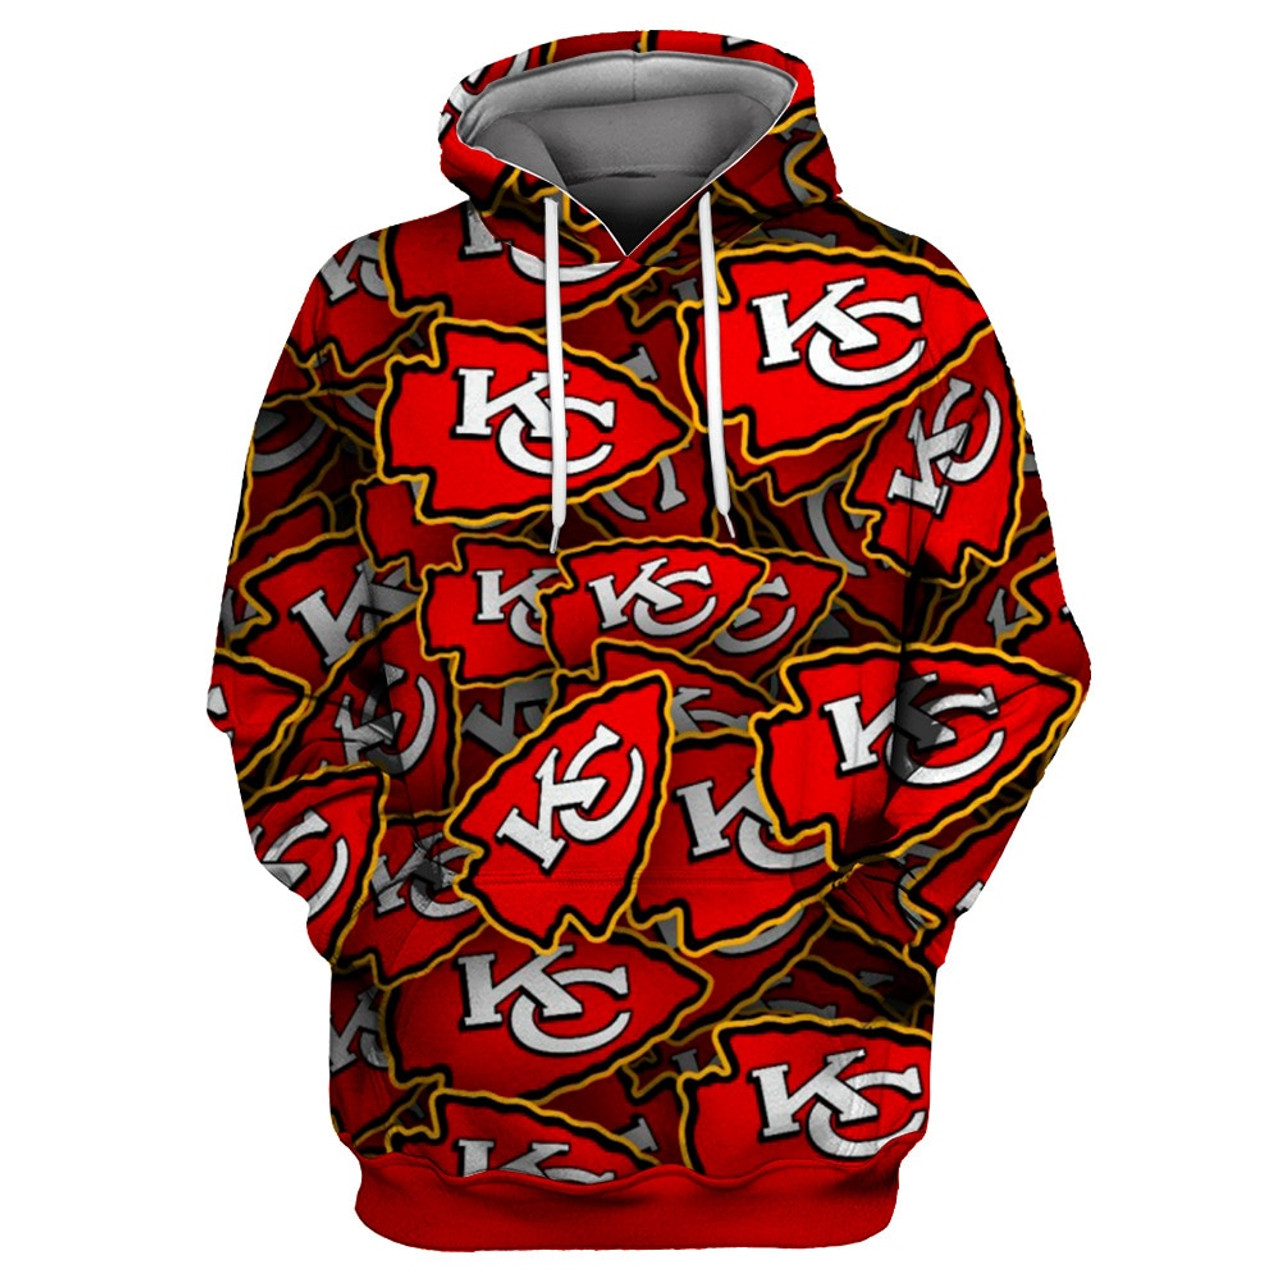 **(OFFICIAL-N.F.L.KANSAS-CITY-CHIEFS-PULLOVER-HOODIE & CHIEFS-ARROW-HEAD-DESIGN/CUSTOM-3D-GRAPHIC-PRINTED-DETAILED-DOUBLE-SIDED-DESIGN/CLASSIC-OFFICIAL-CHIEFS-TEAM-LOGOS & OFFICIAL-CHIEFS-TEAM-COLORS/WARM-PREMIUM-OFFICIAL-N.F.L.CHIEFS-HOODIES)**